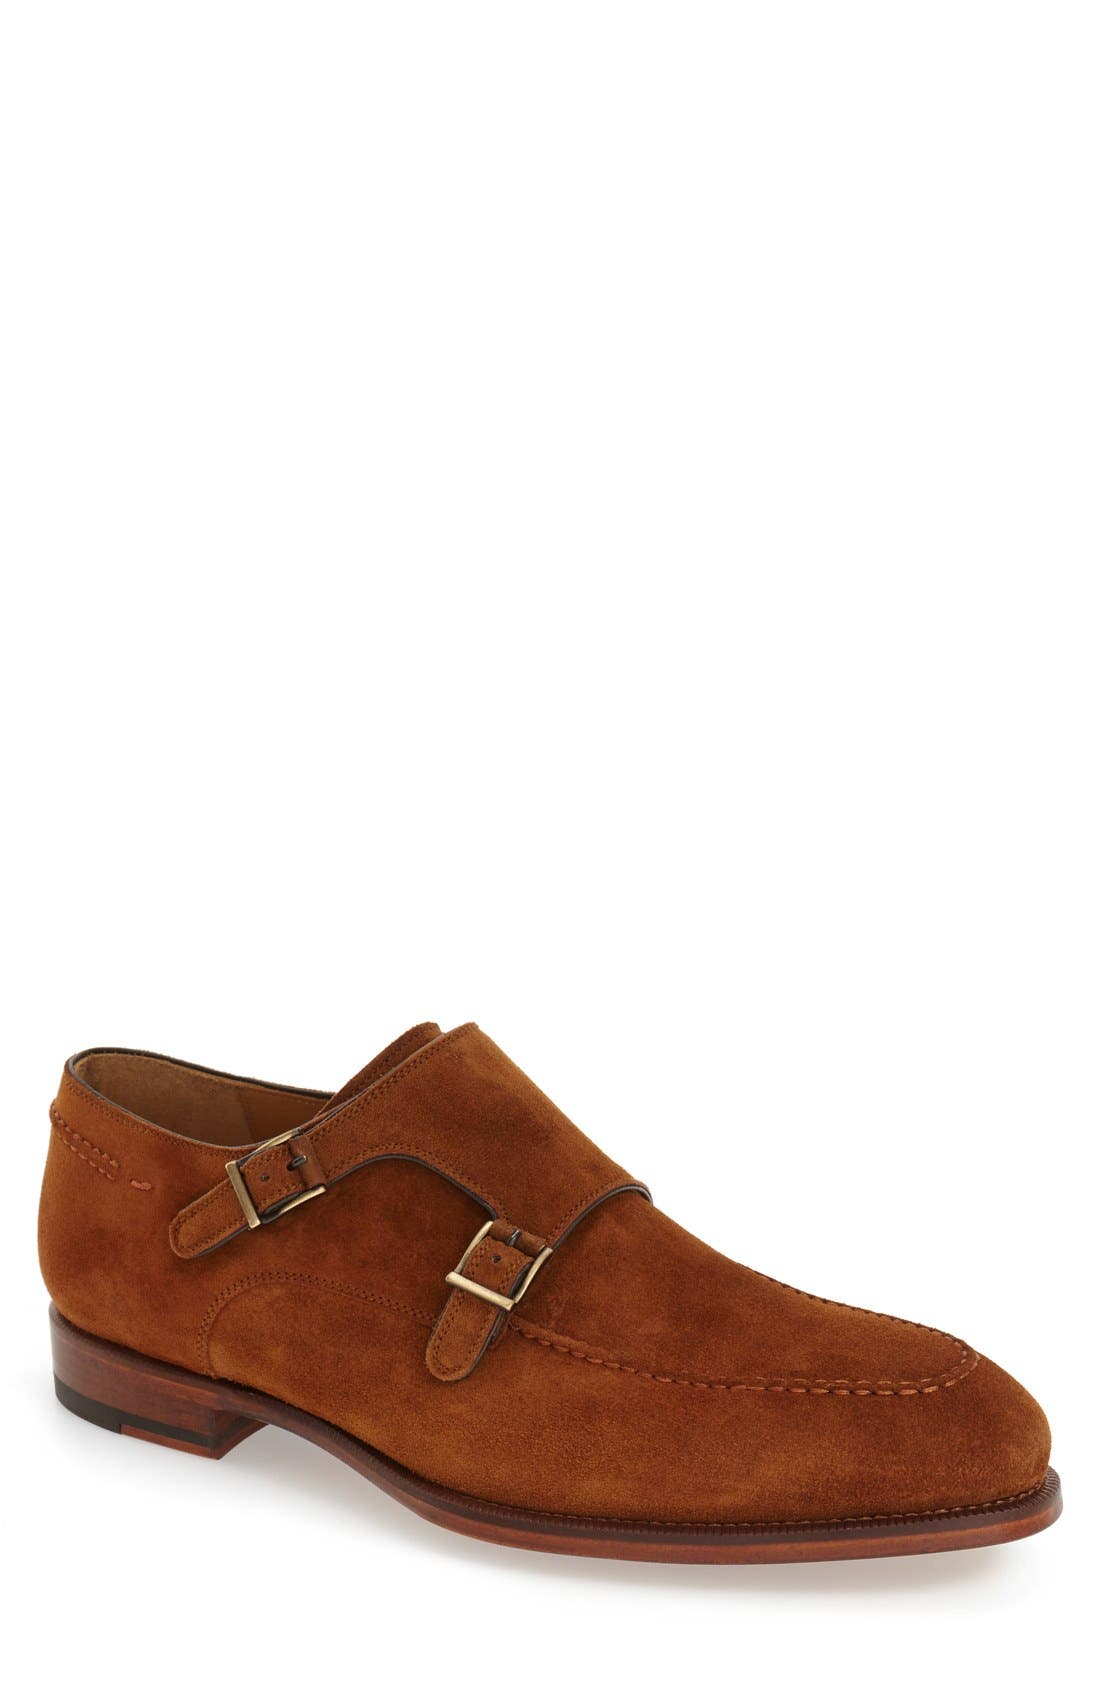 Main Image - Magnanni 'Tomas' Double Monk Strap Shoe (Men)